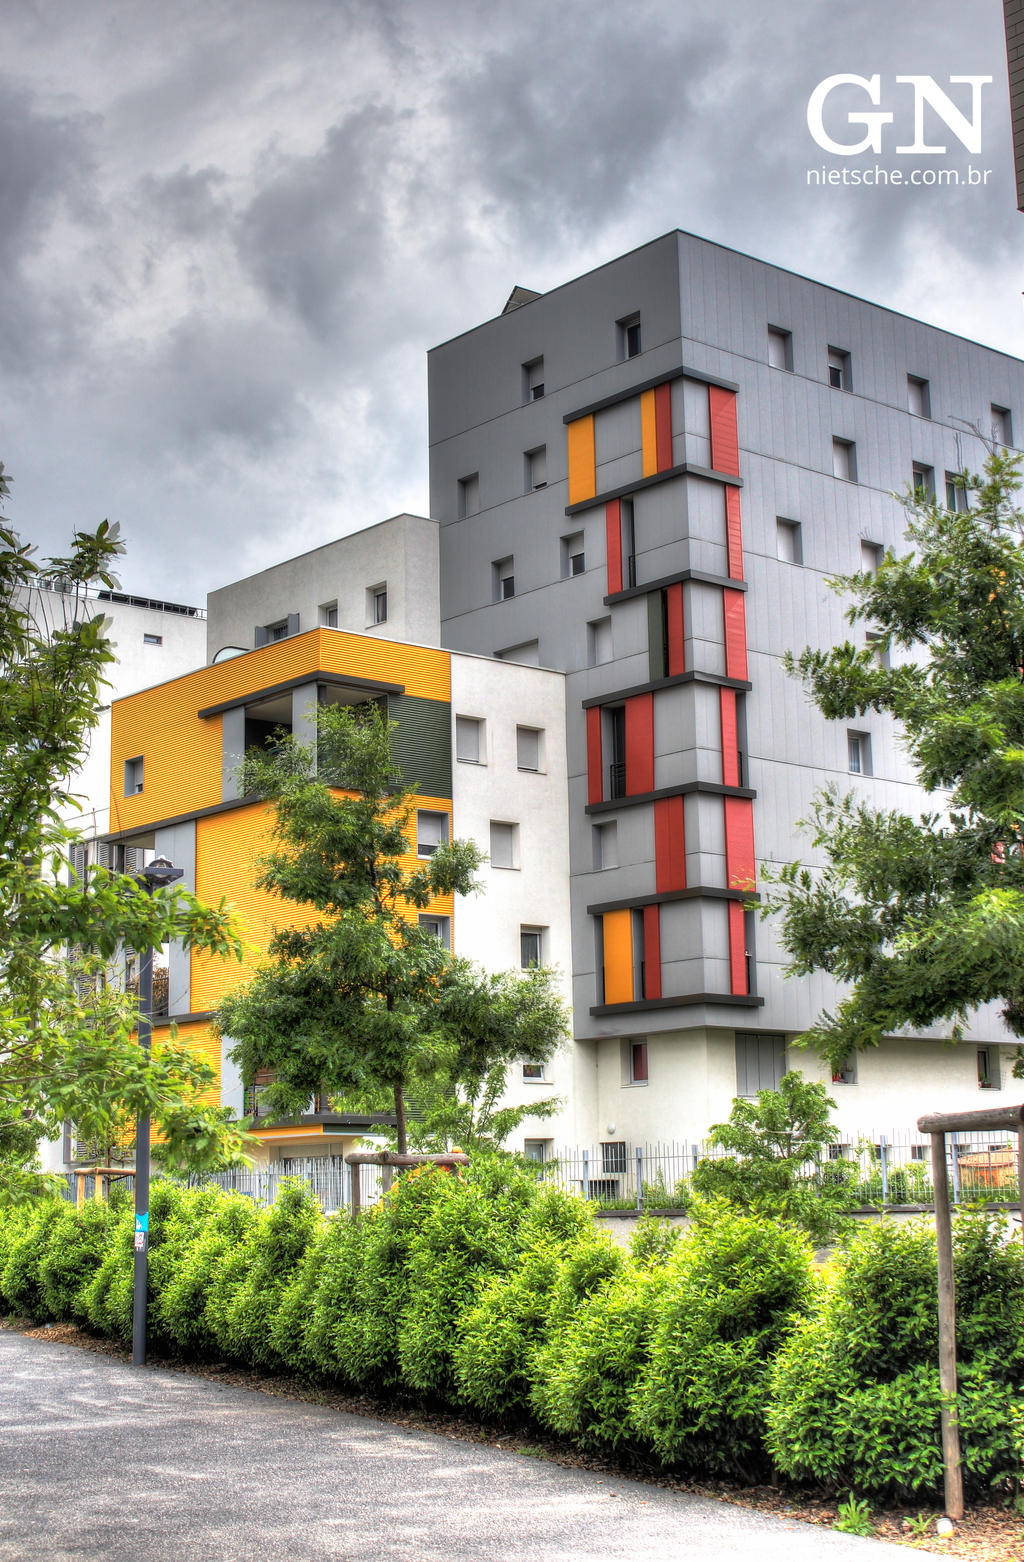 Modern housing 2 by gnietsche on deviantart Contemporary housing